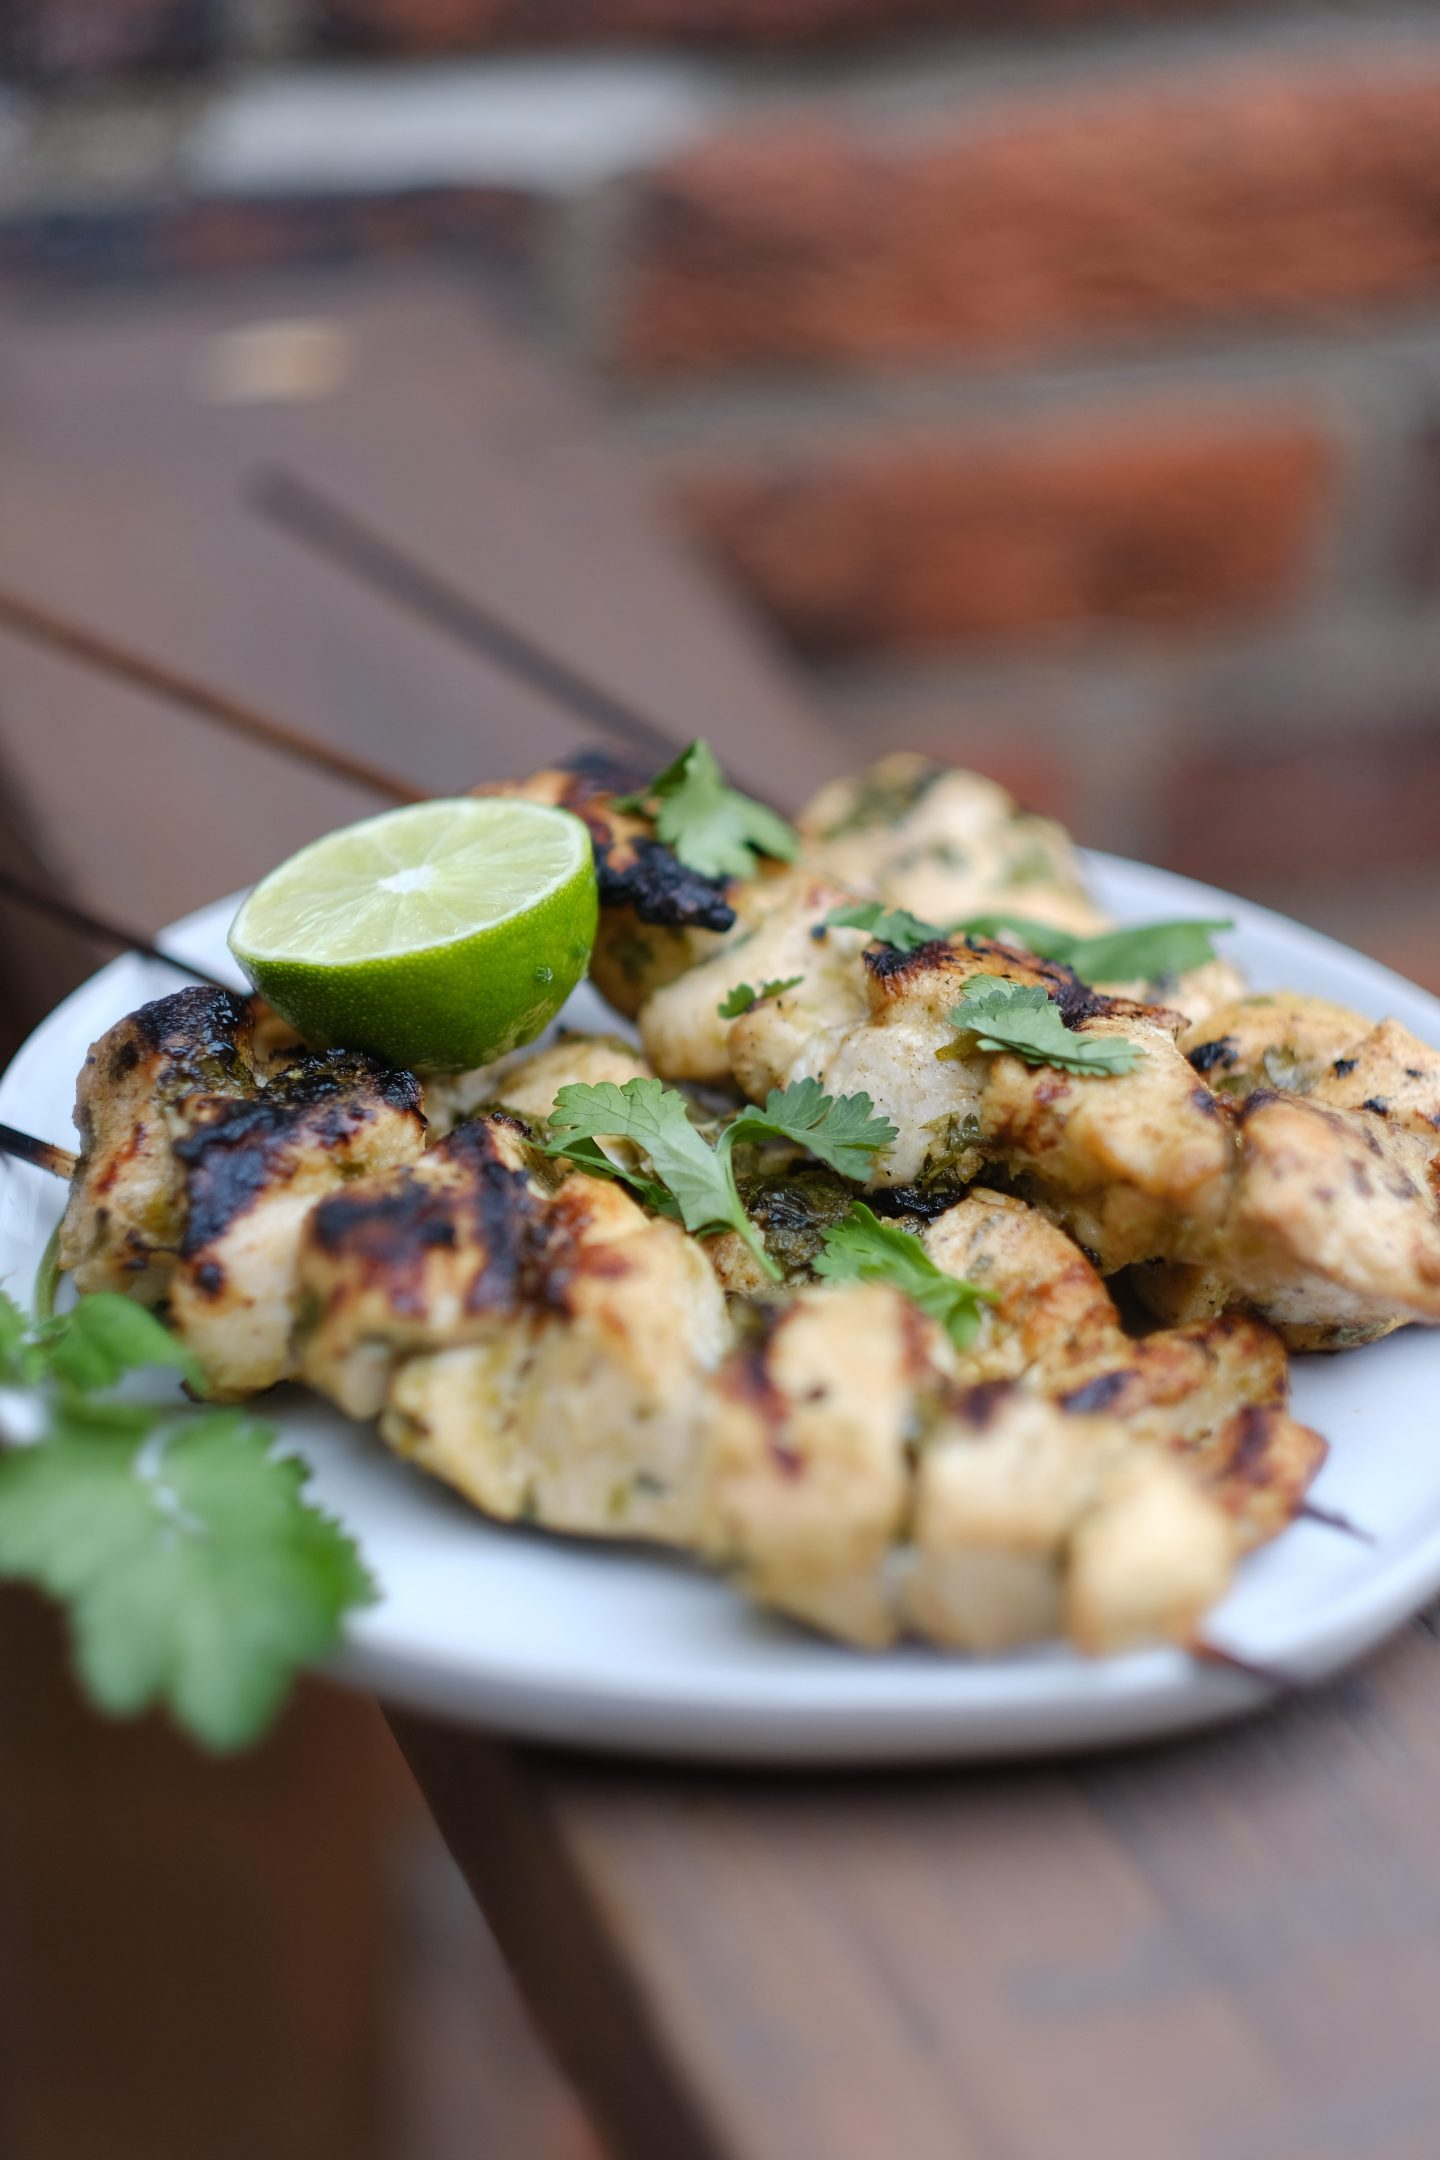 Lifestyle Blogger Chocolate & Lace shares her recipe for Cilantro Lime Skewers.